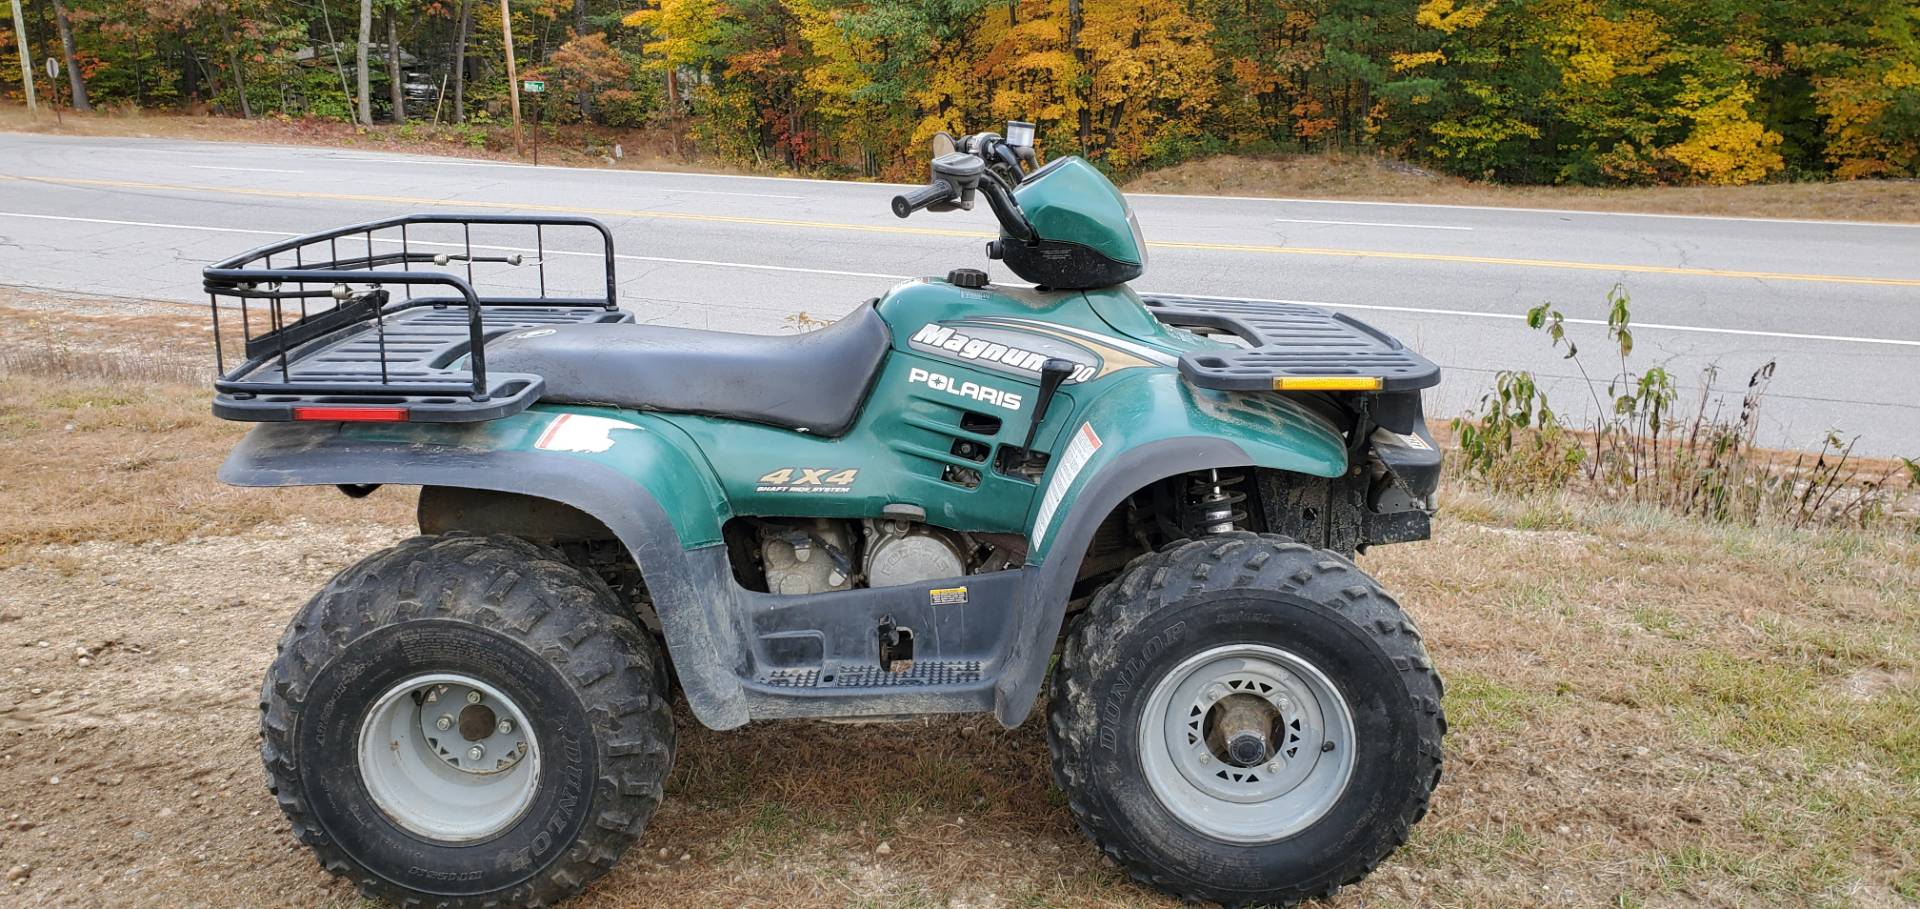 2000 Polaris Magnum 500 in Tamworth, New Hampshire - Photo 1